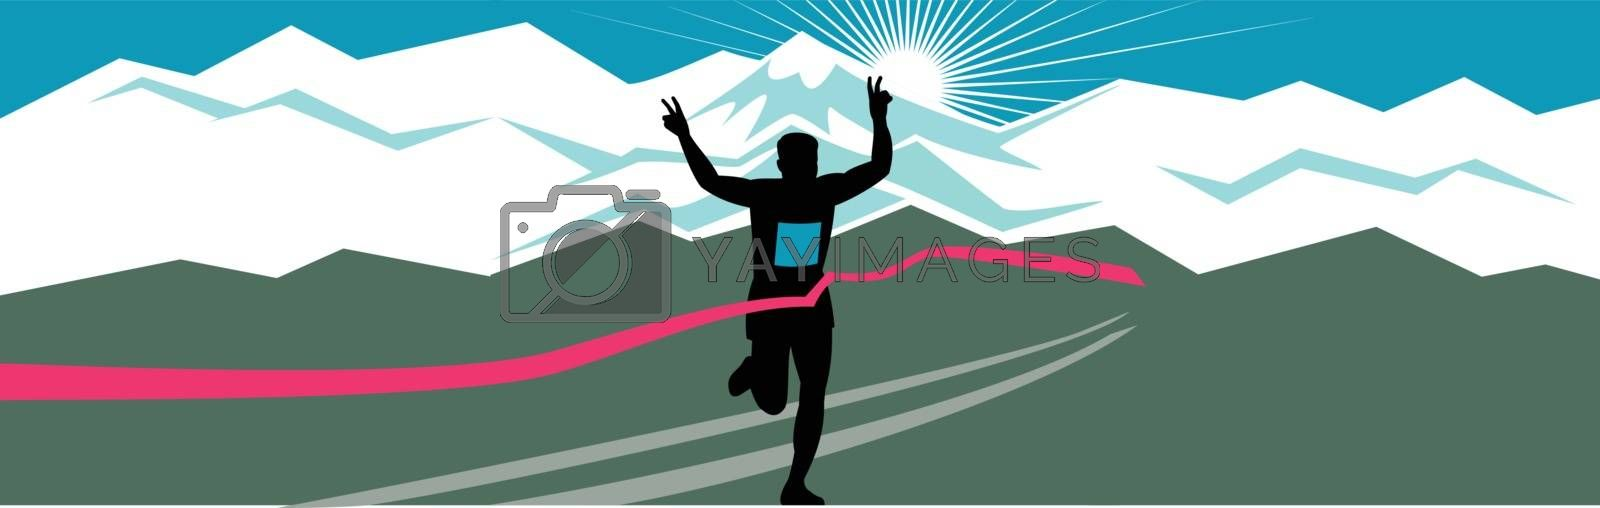 Retro style illustration of a silhouette of marathon runner flashing victory hand sign with snow capped mountains and sunburst and finish line ribbon tape in extra wide horizontal format.